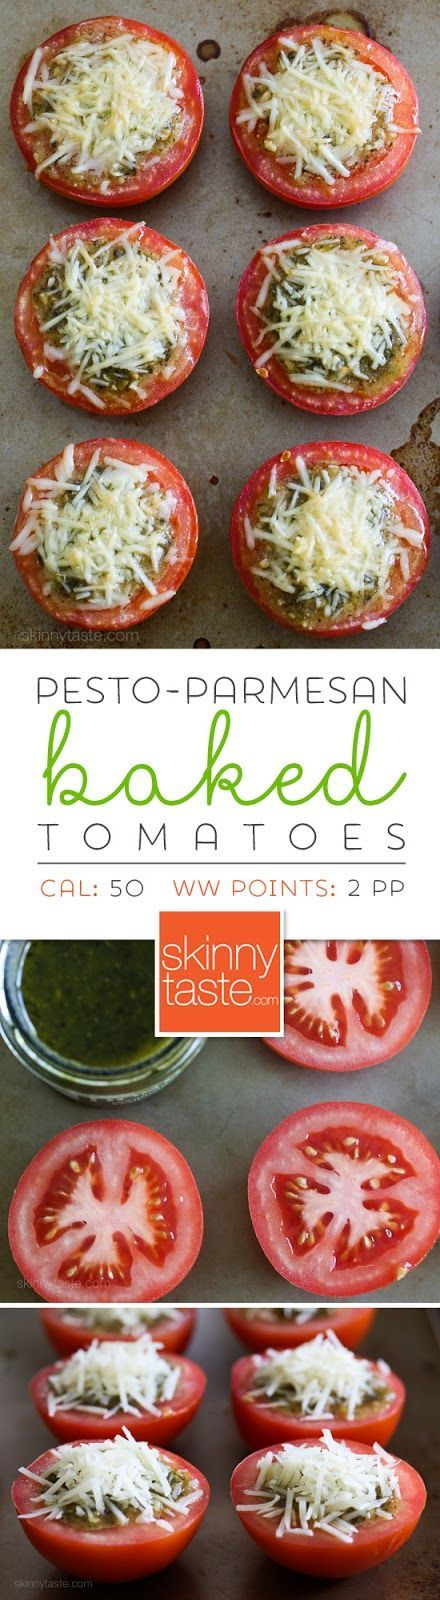 Pesto-Parmesan Baked Tomatoes – made with just 3 ingredients! 1 SP